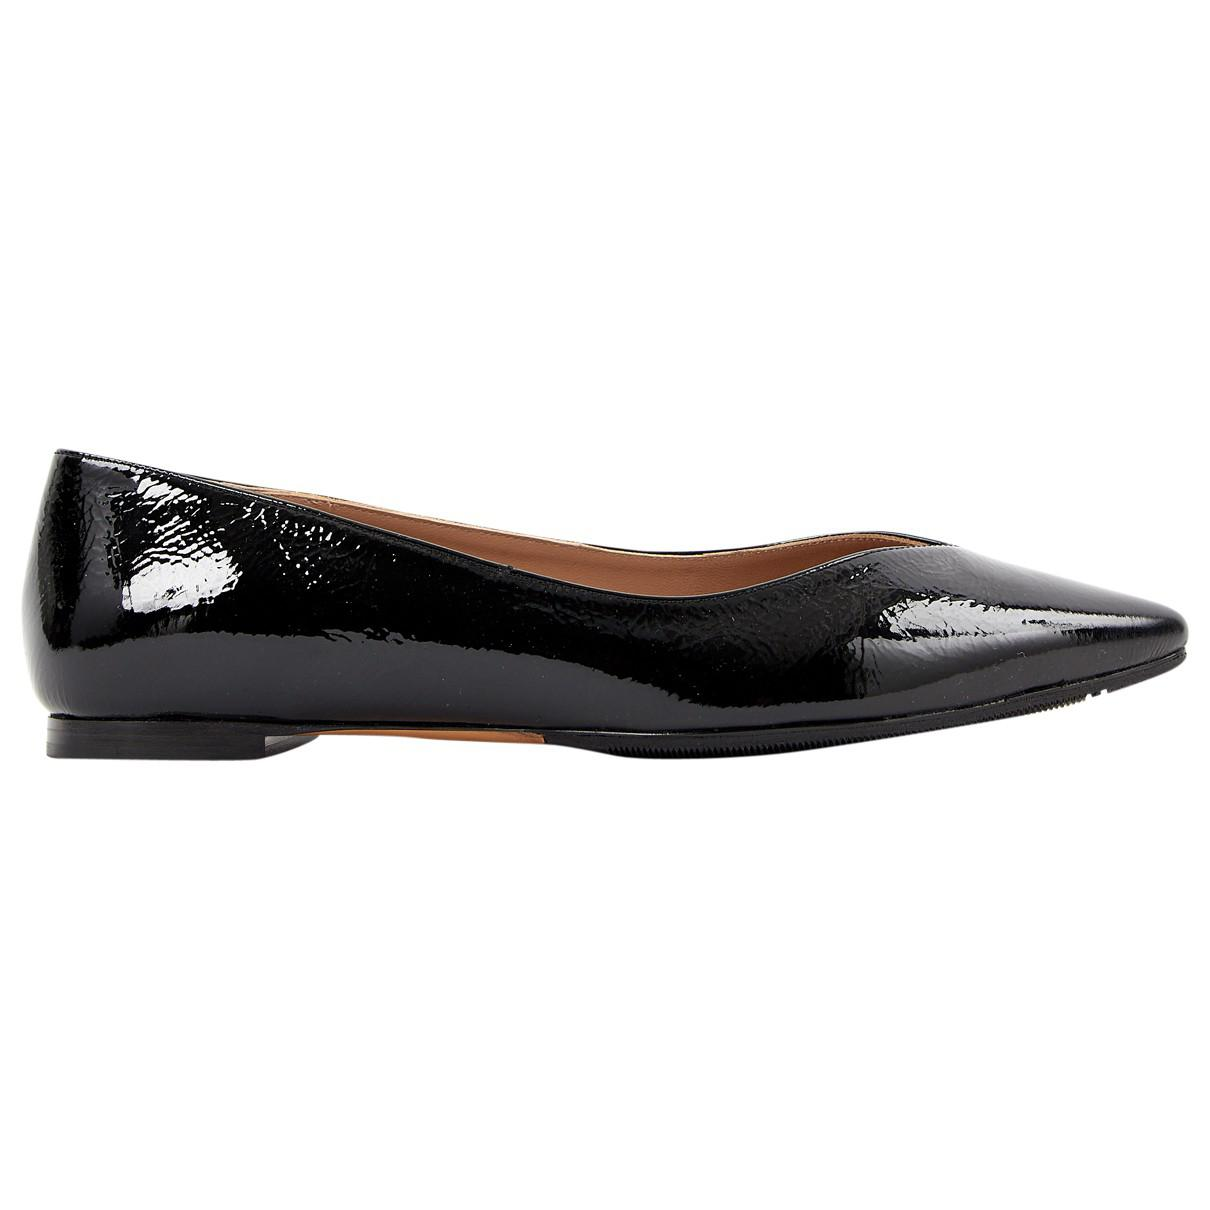 Pre-owned - Patent leather flats Chlo 6cDnqM